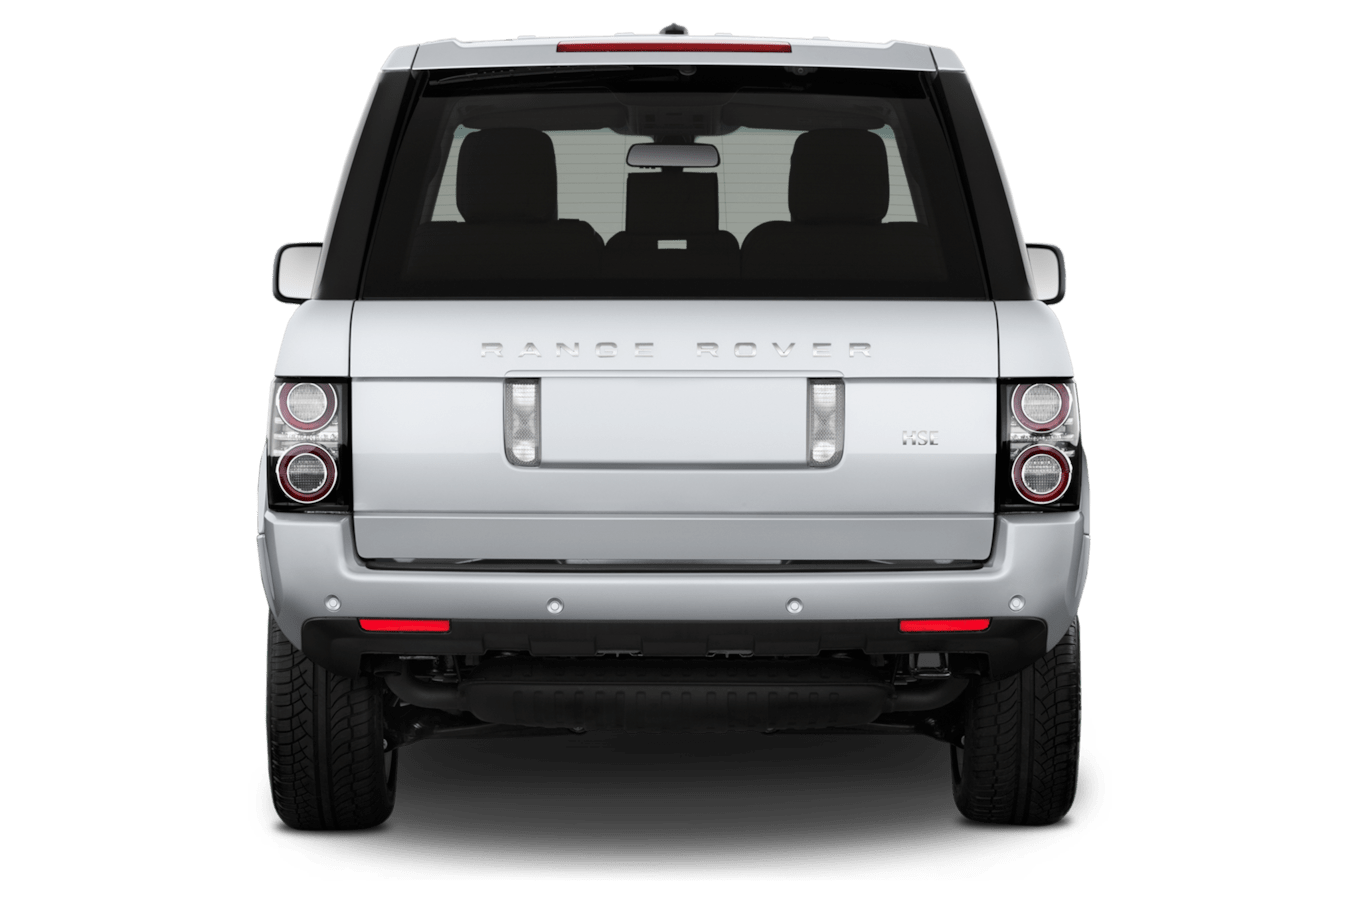 land rover discovery 4 trailer plug wiring diagram 2006 scion xb range hse best library 2003 nissan frontier harness connectors